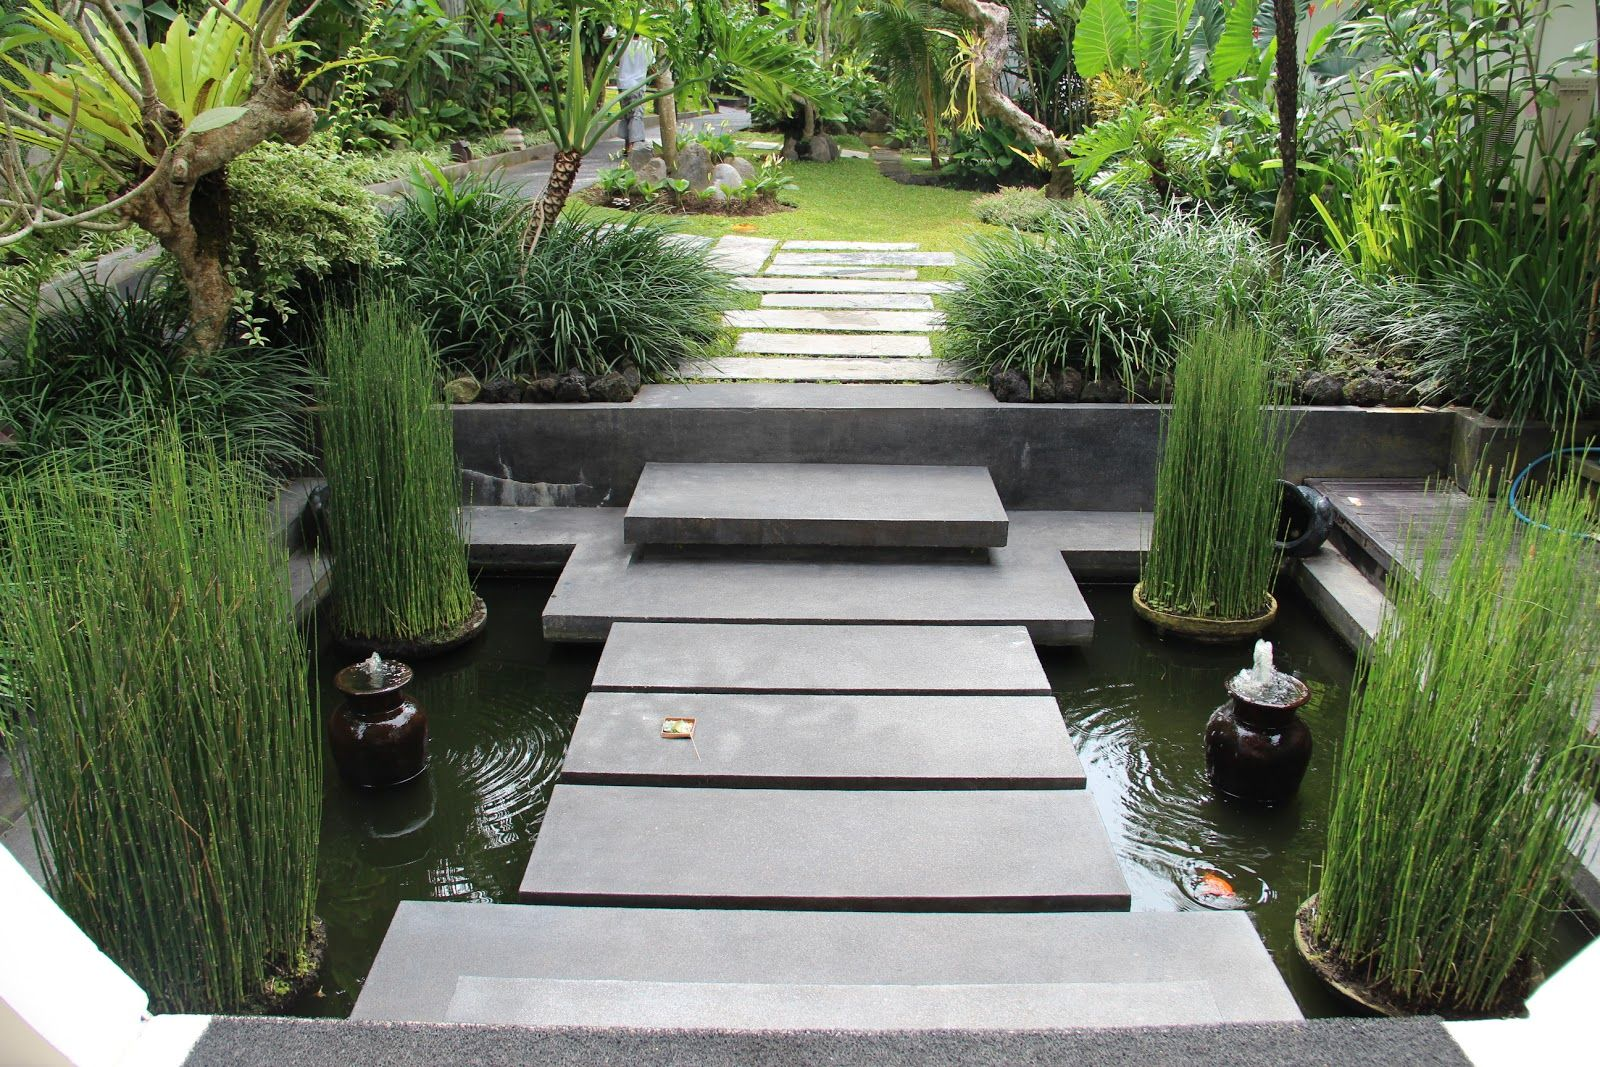 Water Feature And Water Plants Inspirations For My Balinese Garden Project Pinterest